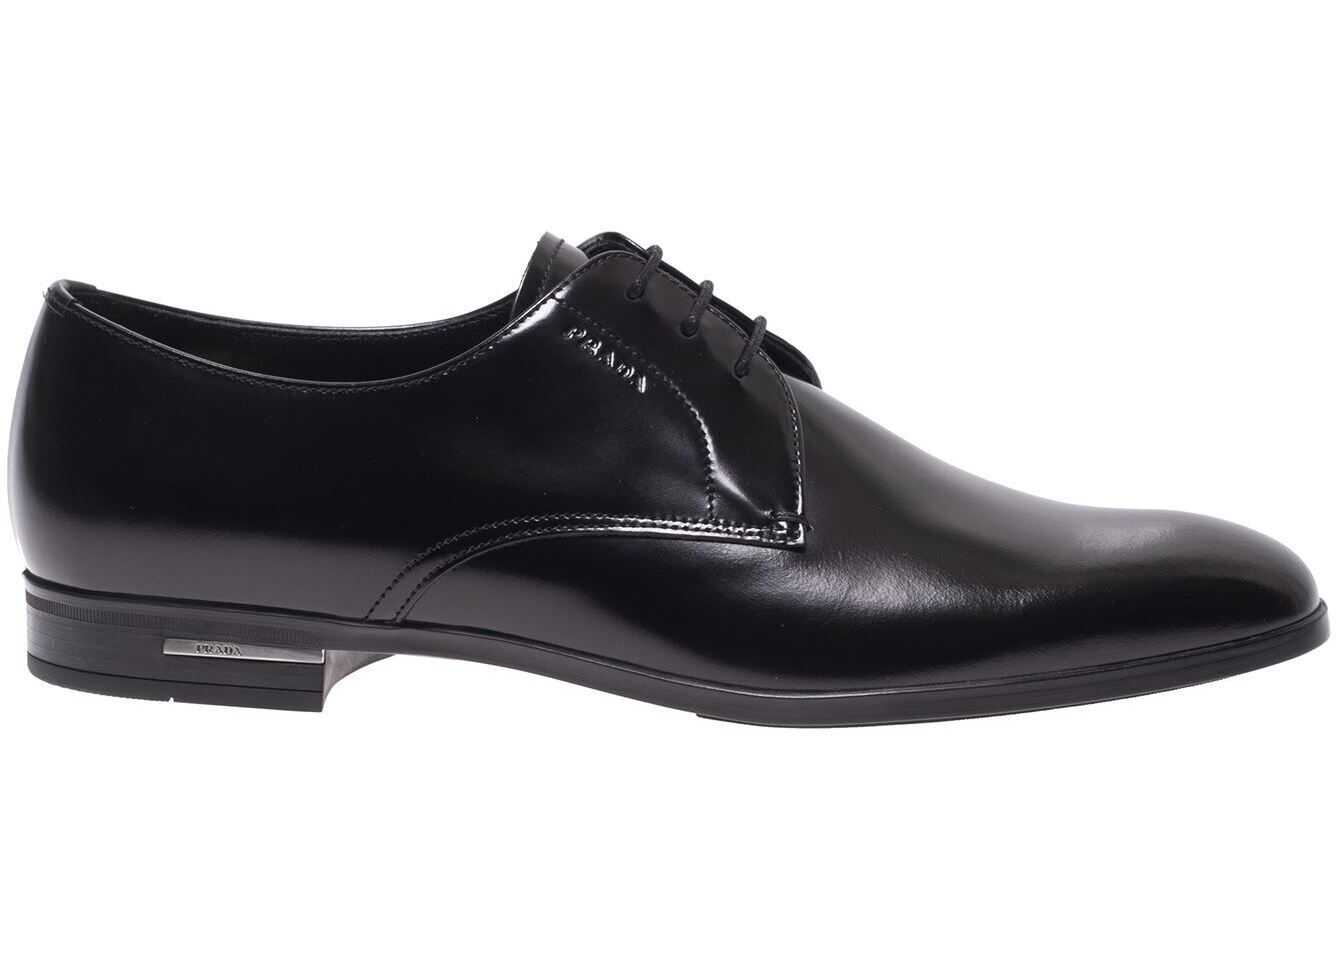 Derby Shoes In Black With Logo Detail On The Heel thumbnail